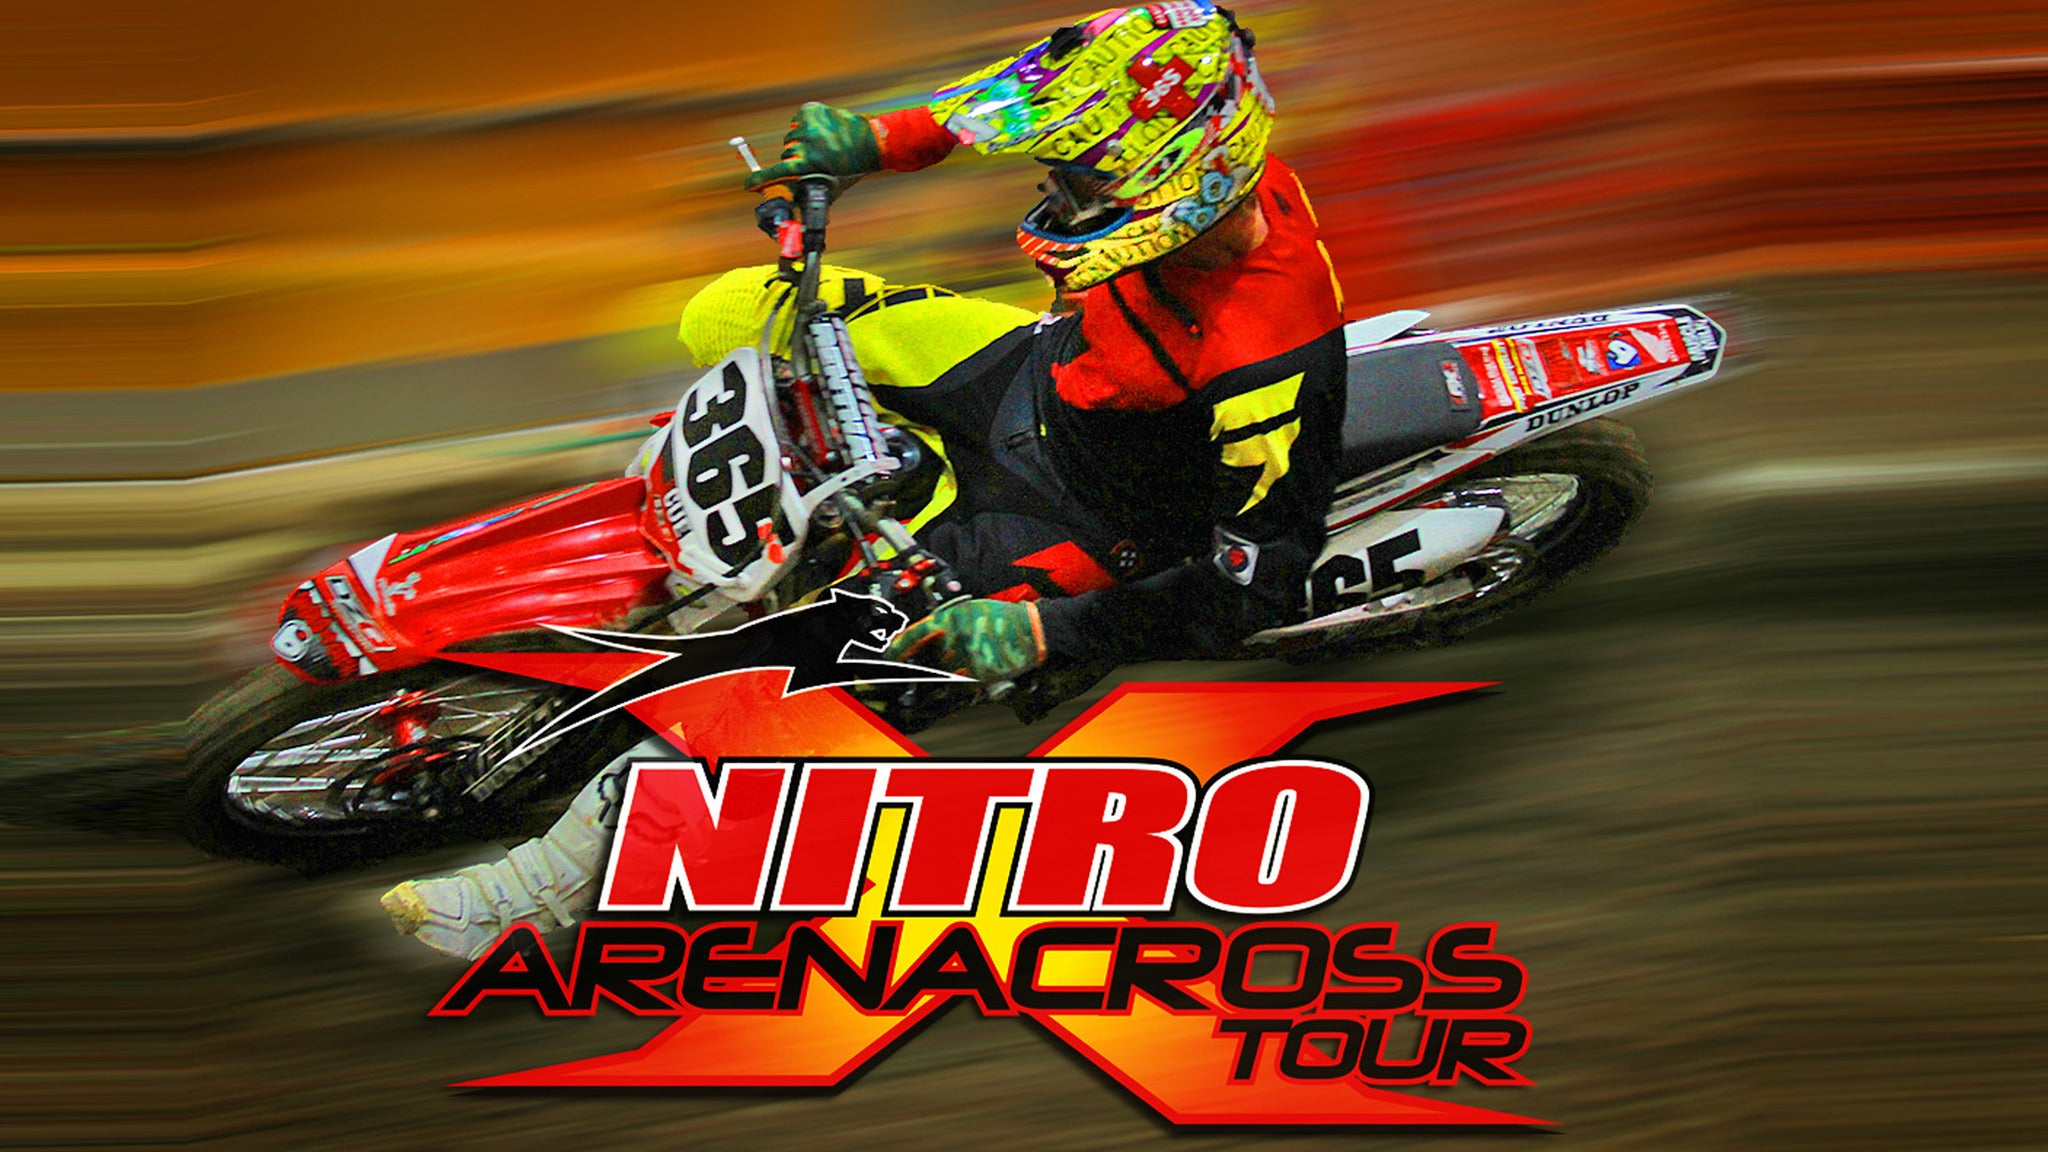 2017 Canadian National Arenacross Tour at Abbotsford Centre